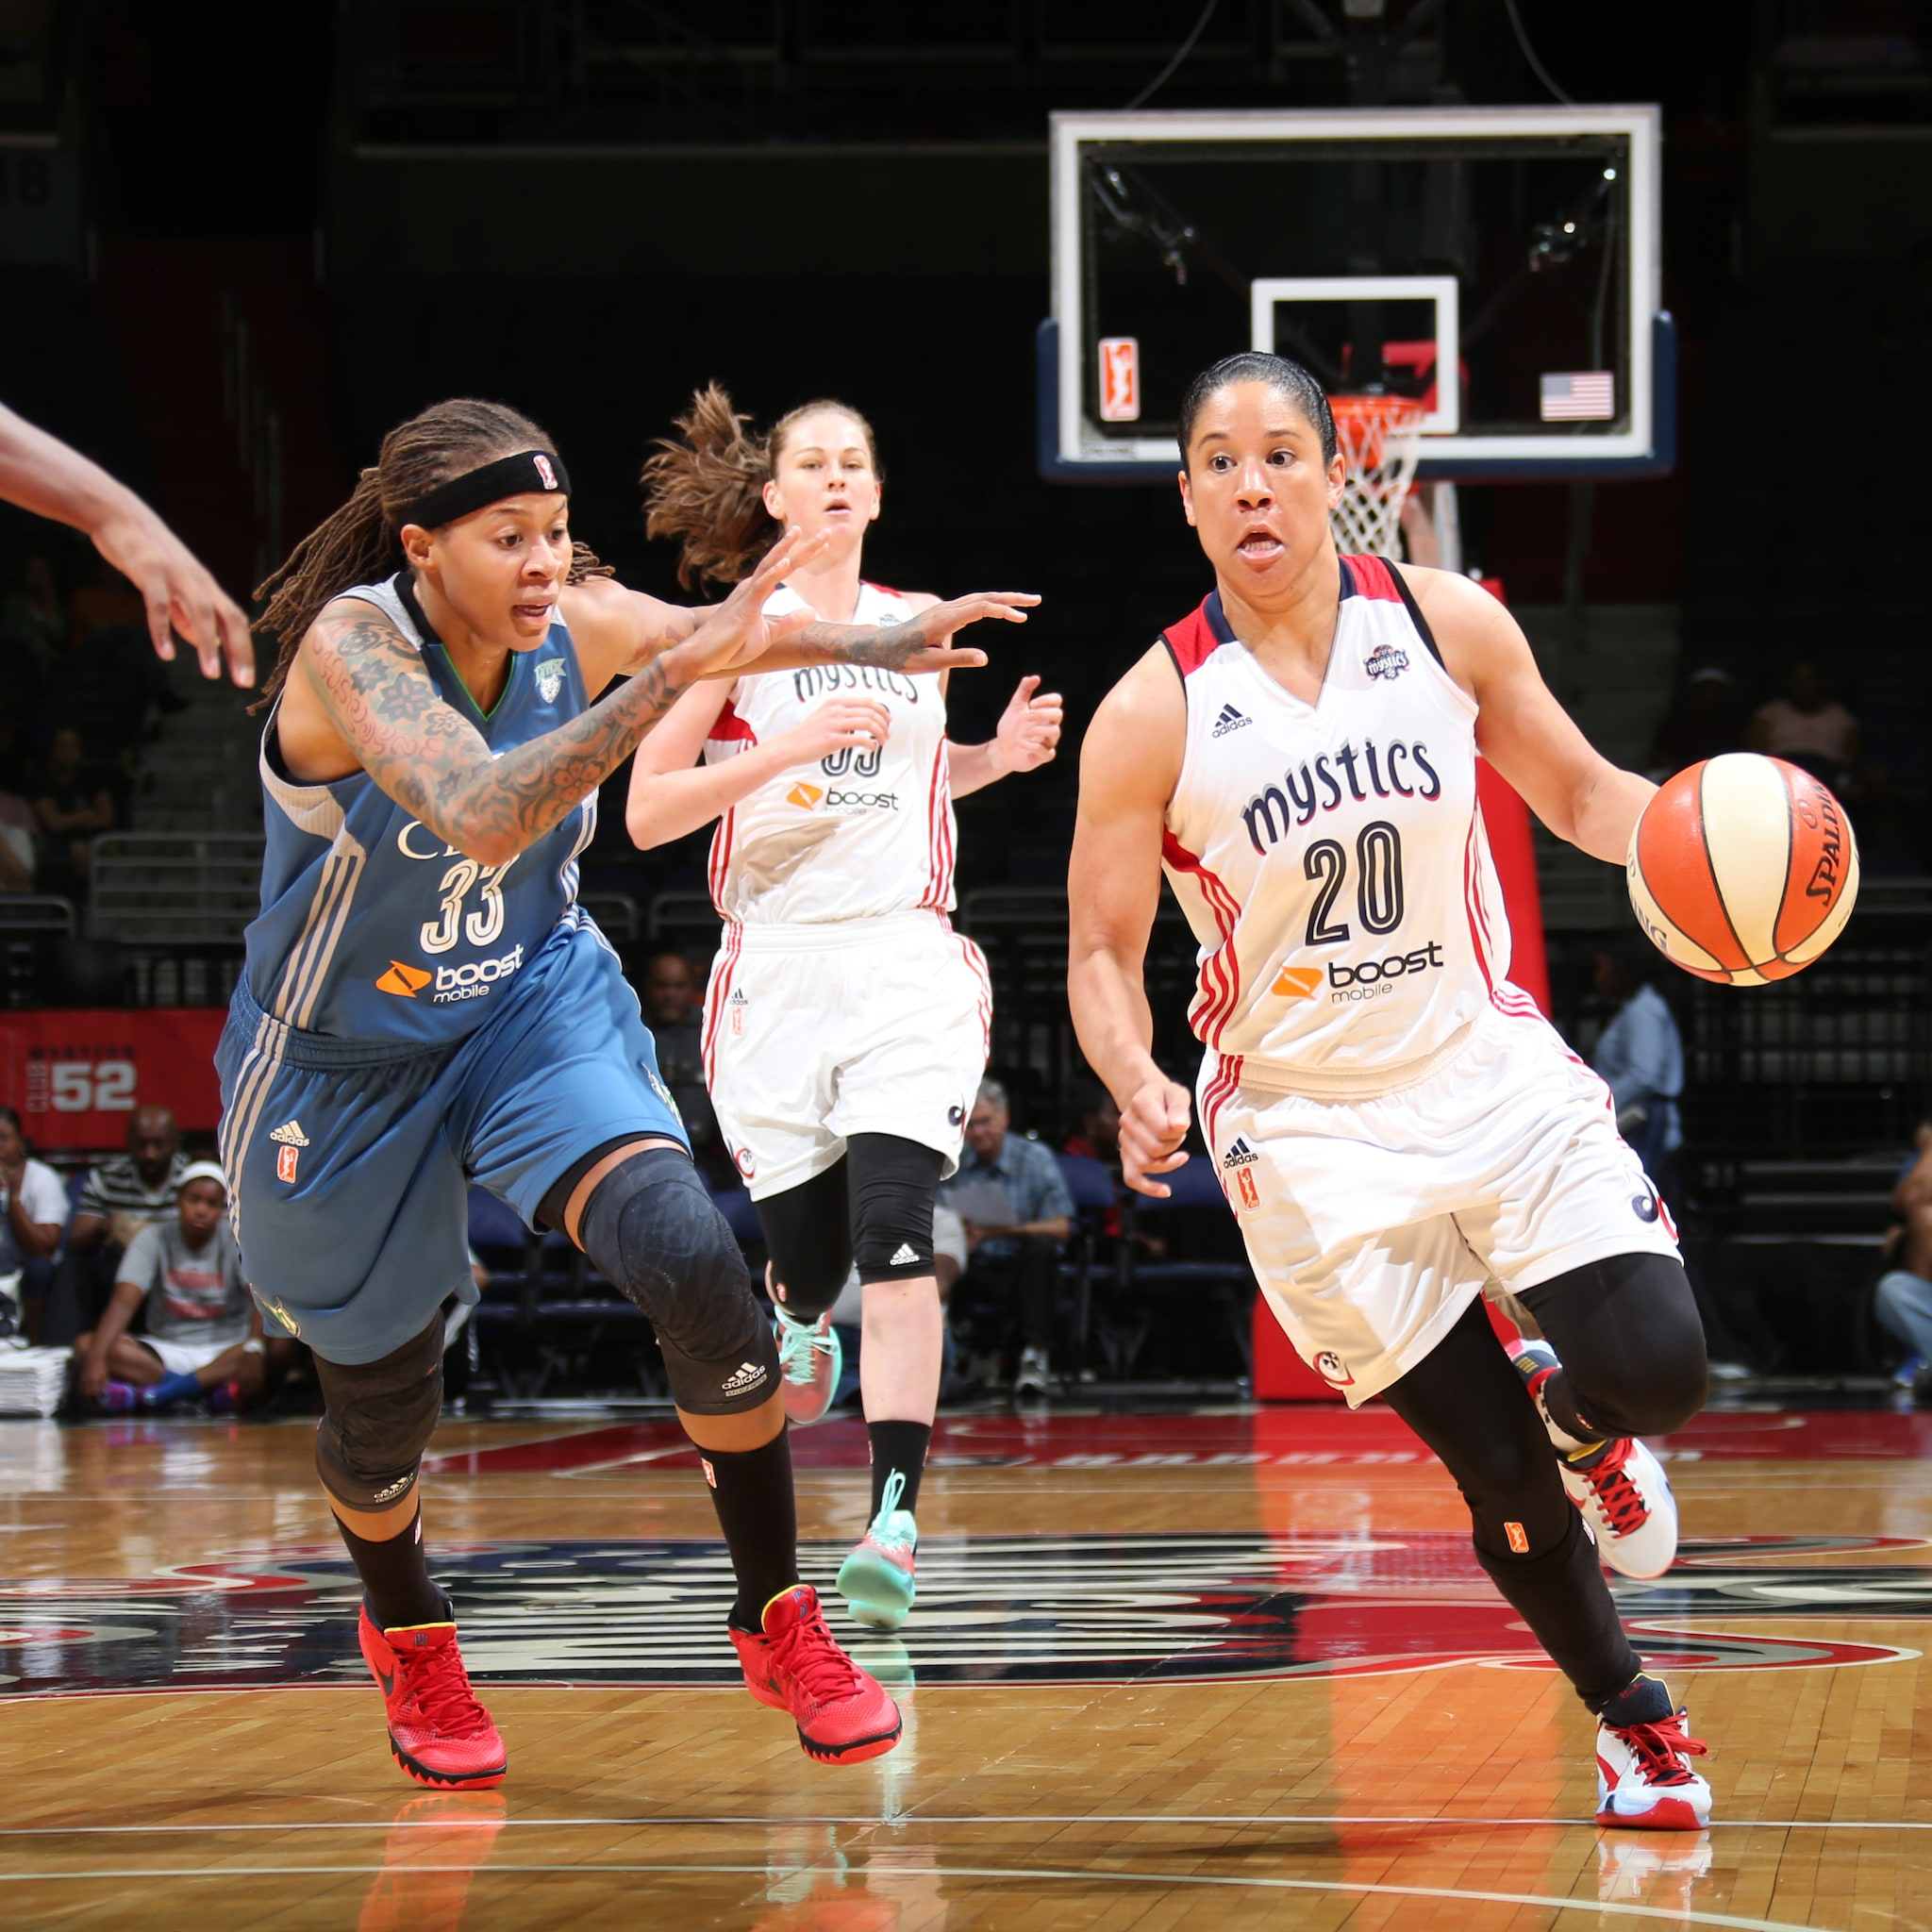 Mystics guard Kara Lawson had a solid game against the Lynx, finishing with 15 points, four rebounds and two assists.